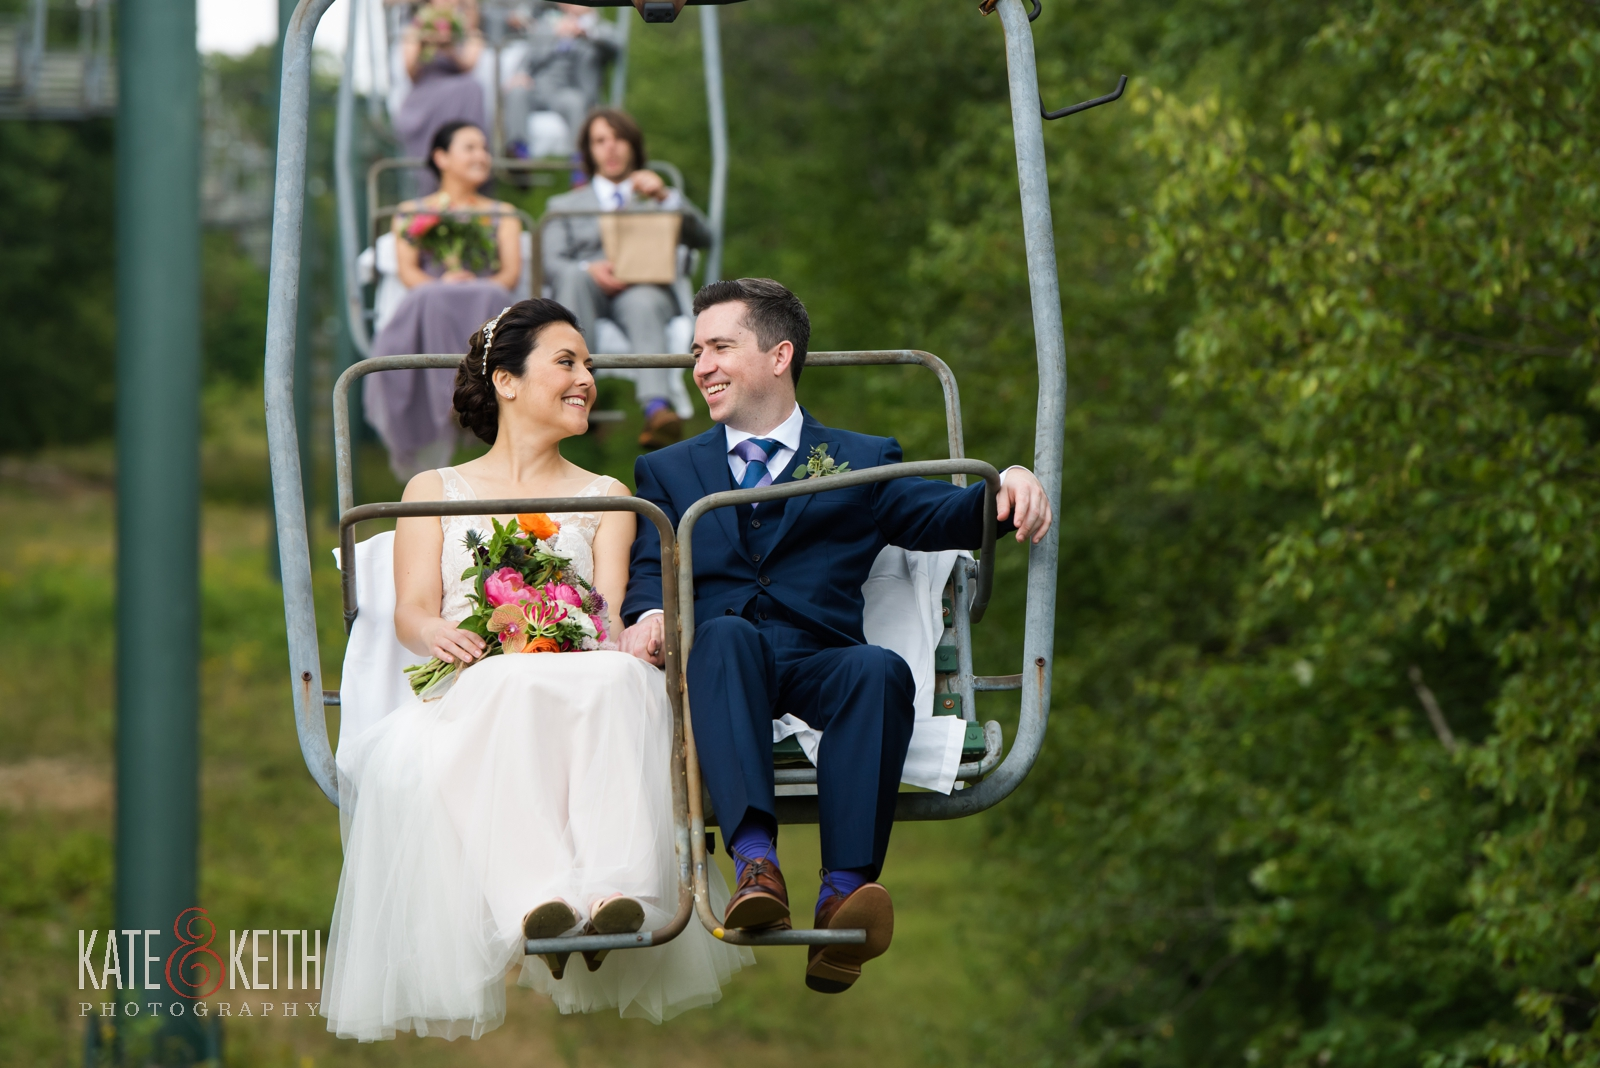 adventure wedding photographers, Waterville Valley, ski resort wedding, adventurous couple, fun couple, wedding day, chairlift, portraits